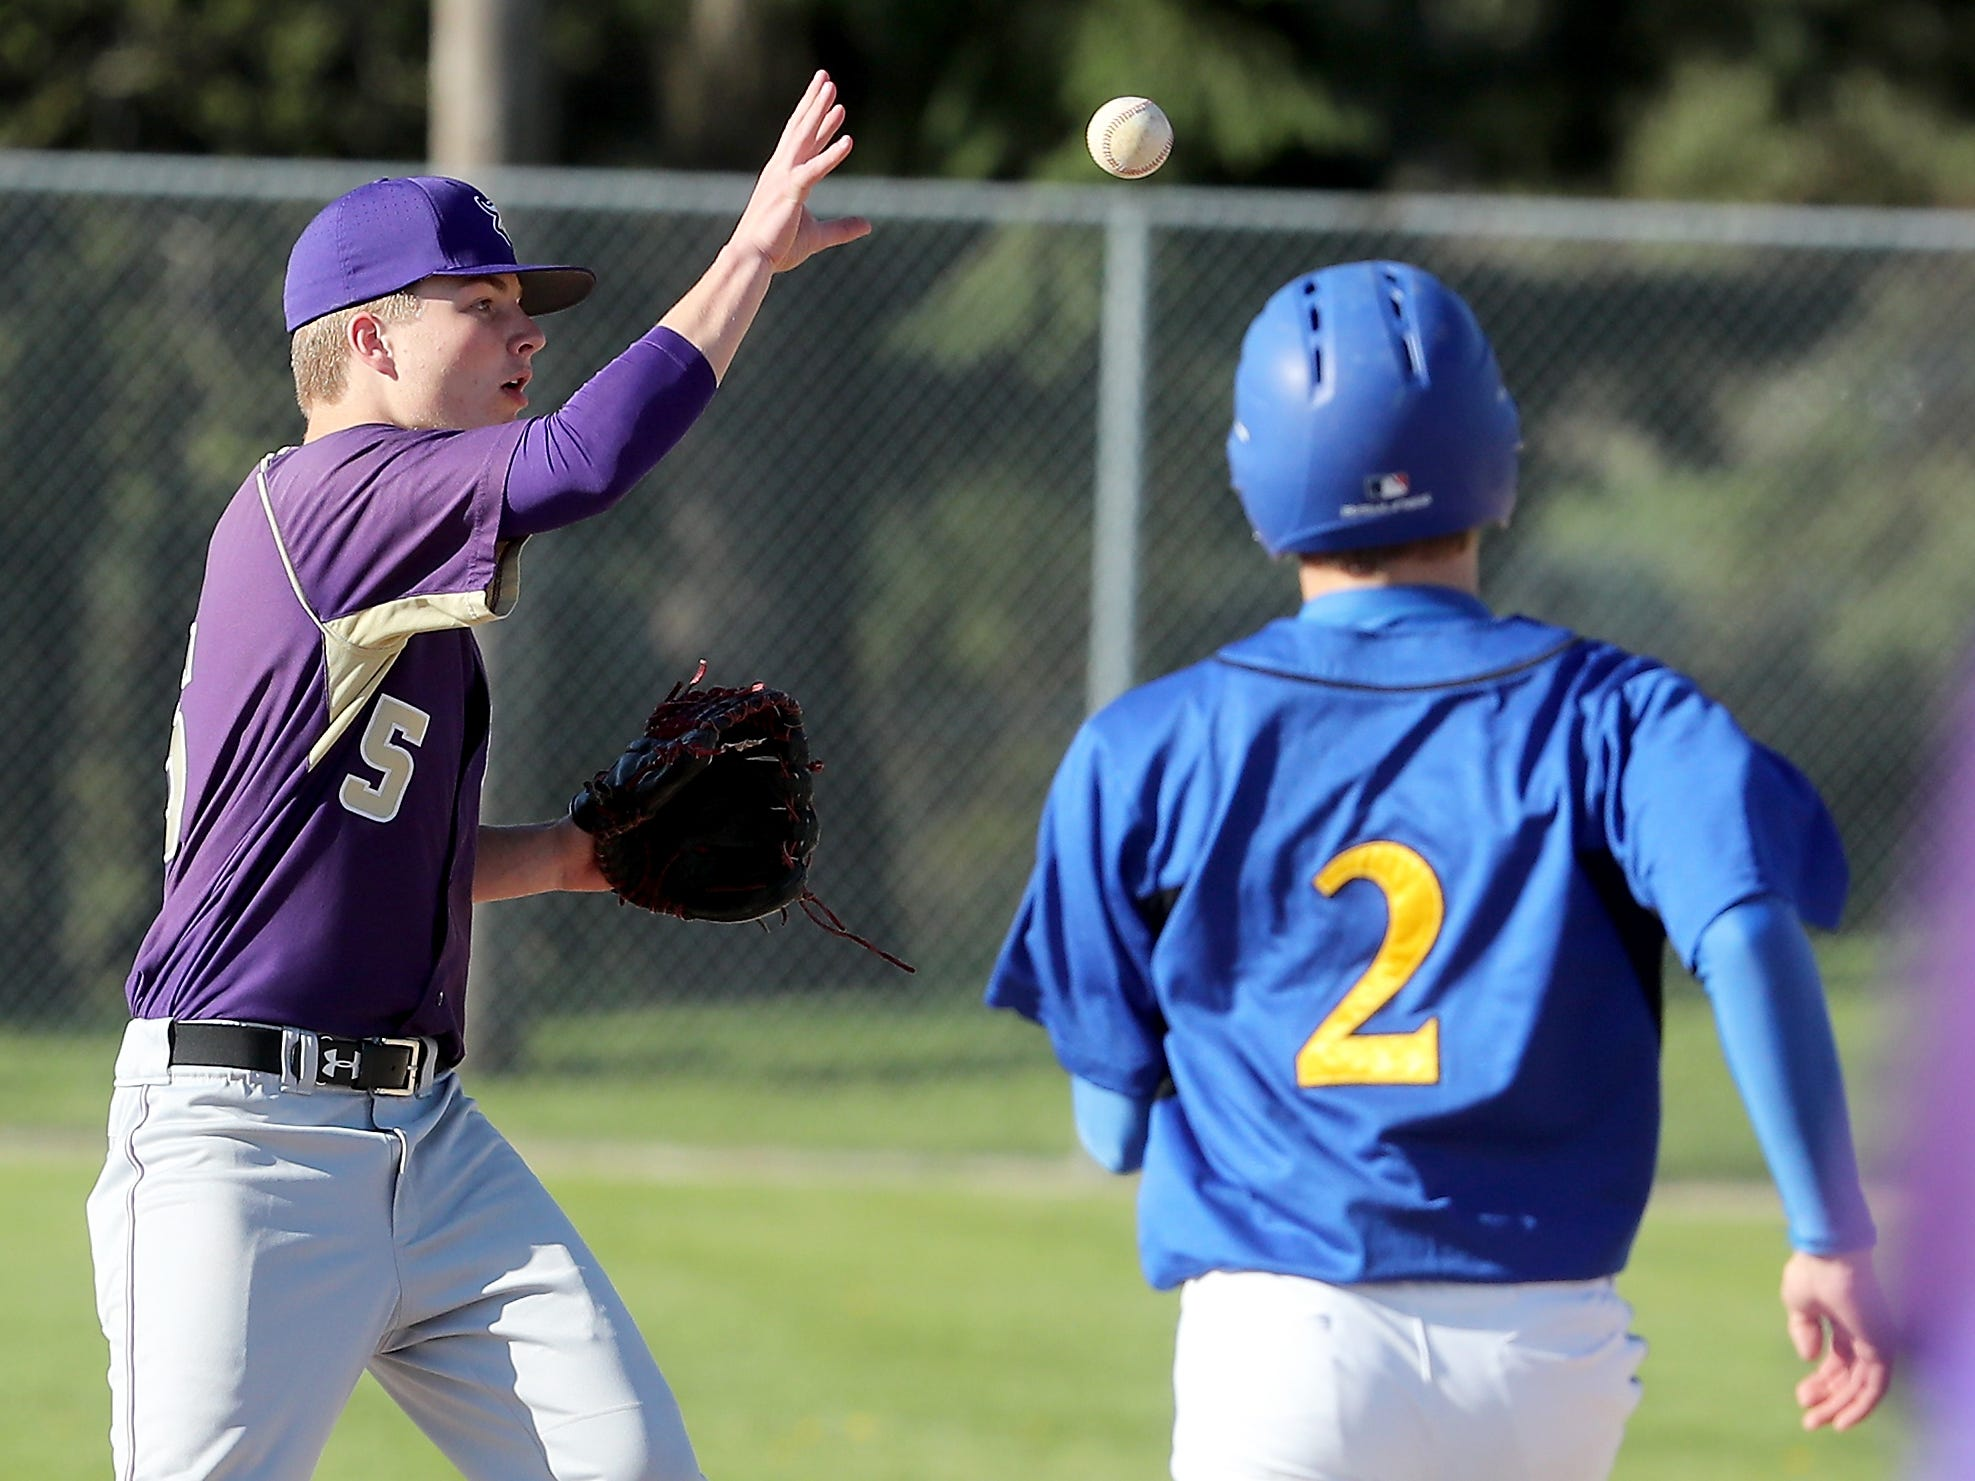 North Kitsap's Colton Bower (5) makes a catch at second and Bremerton's Hunter Tipler (2) is out on the play at Bremerton's Legion Field on Wednesday, April 16, 2019.